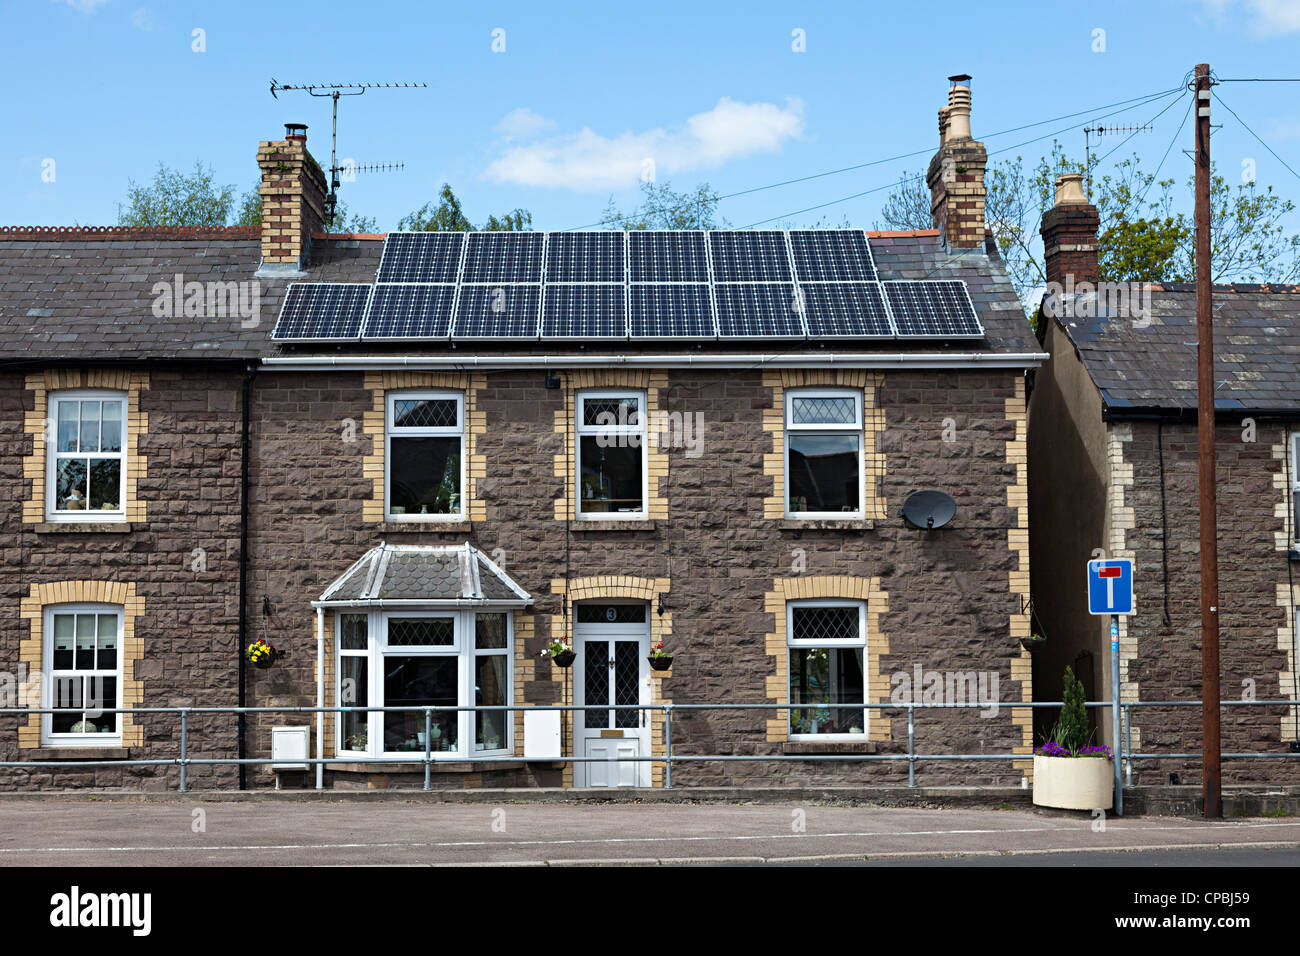 Old stone house in terrace with modern solar panels on roof, Llanfoist, Wales, UK - Stock Image